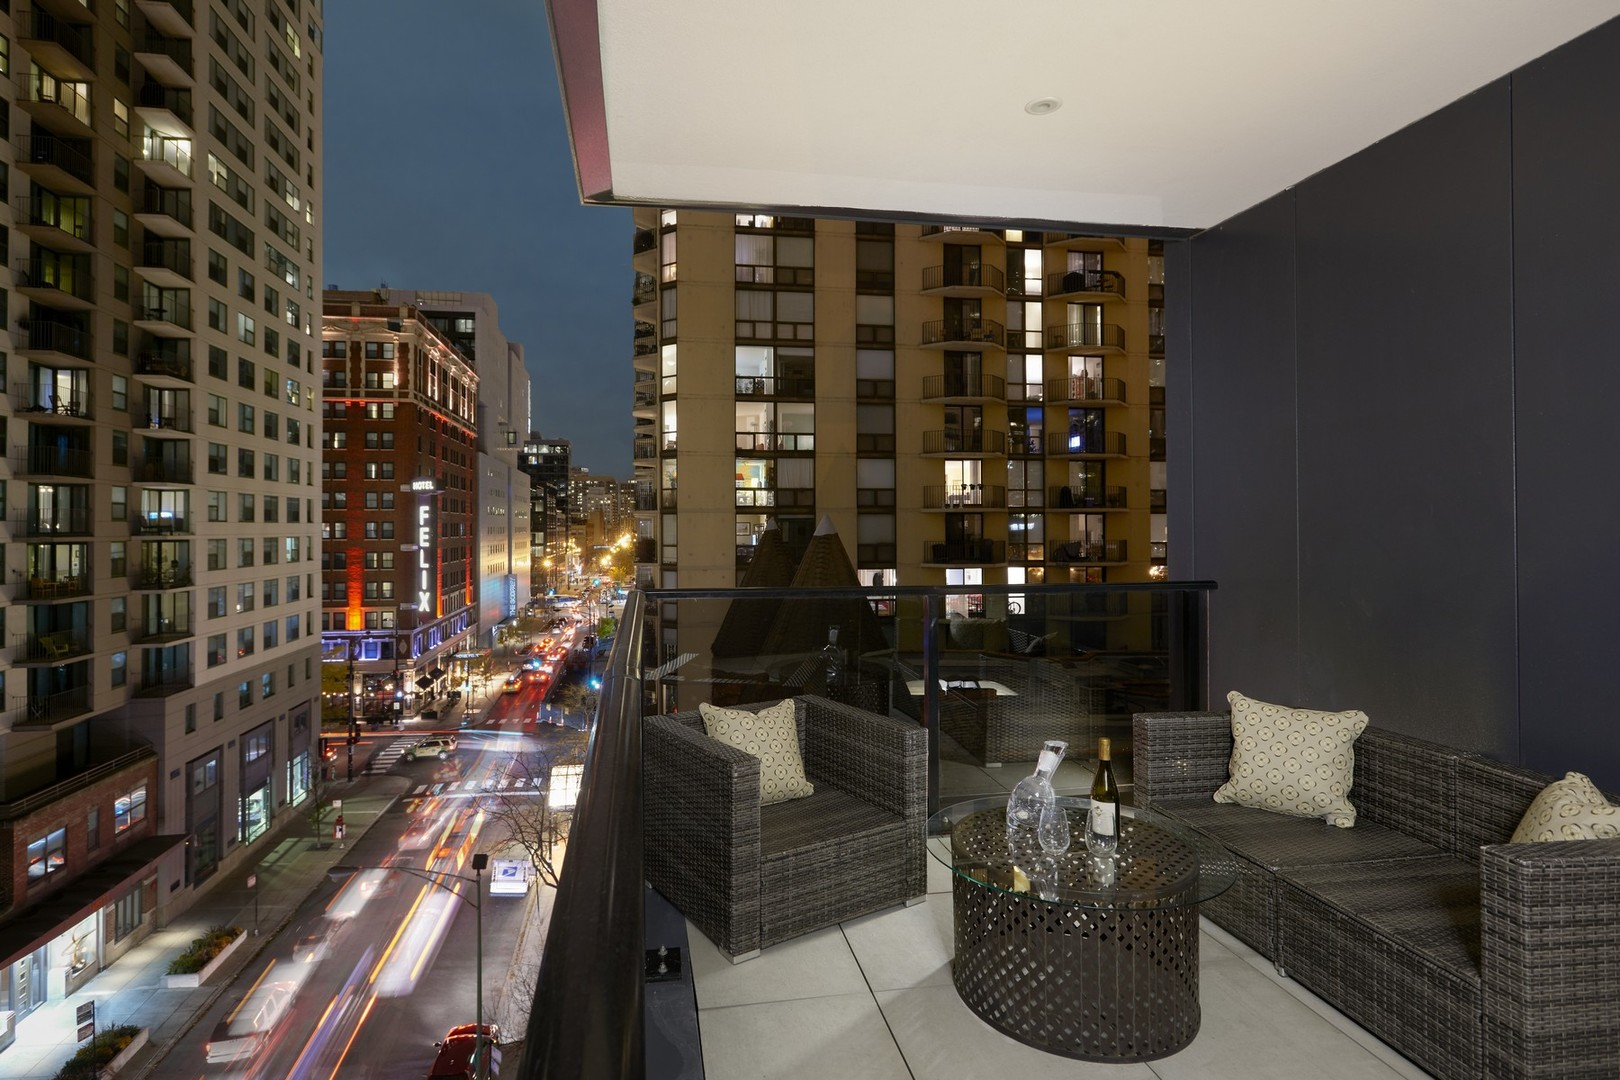 56 West HURON 7, Chicago, Illinois, 60654